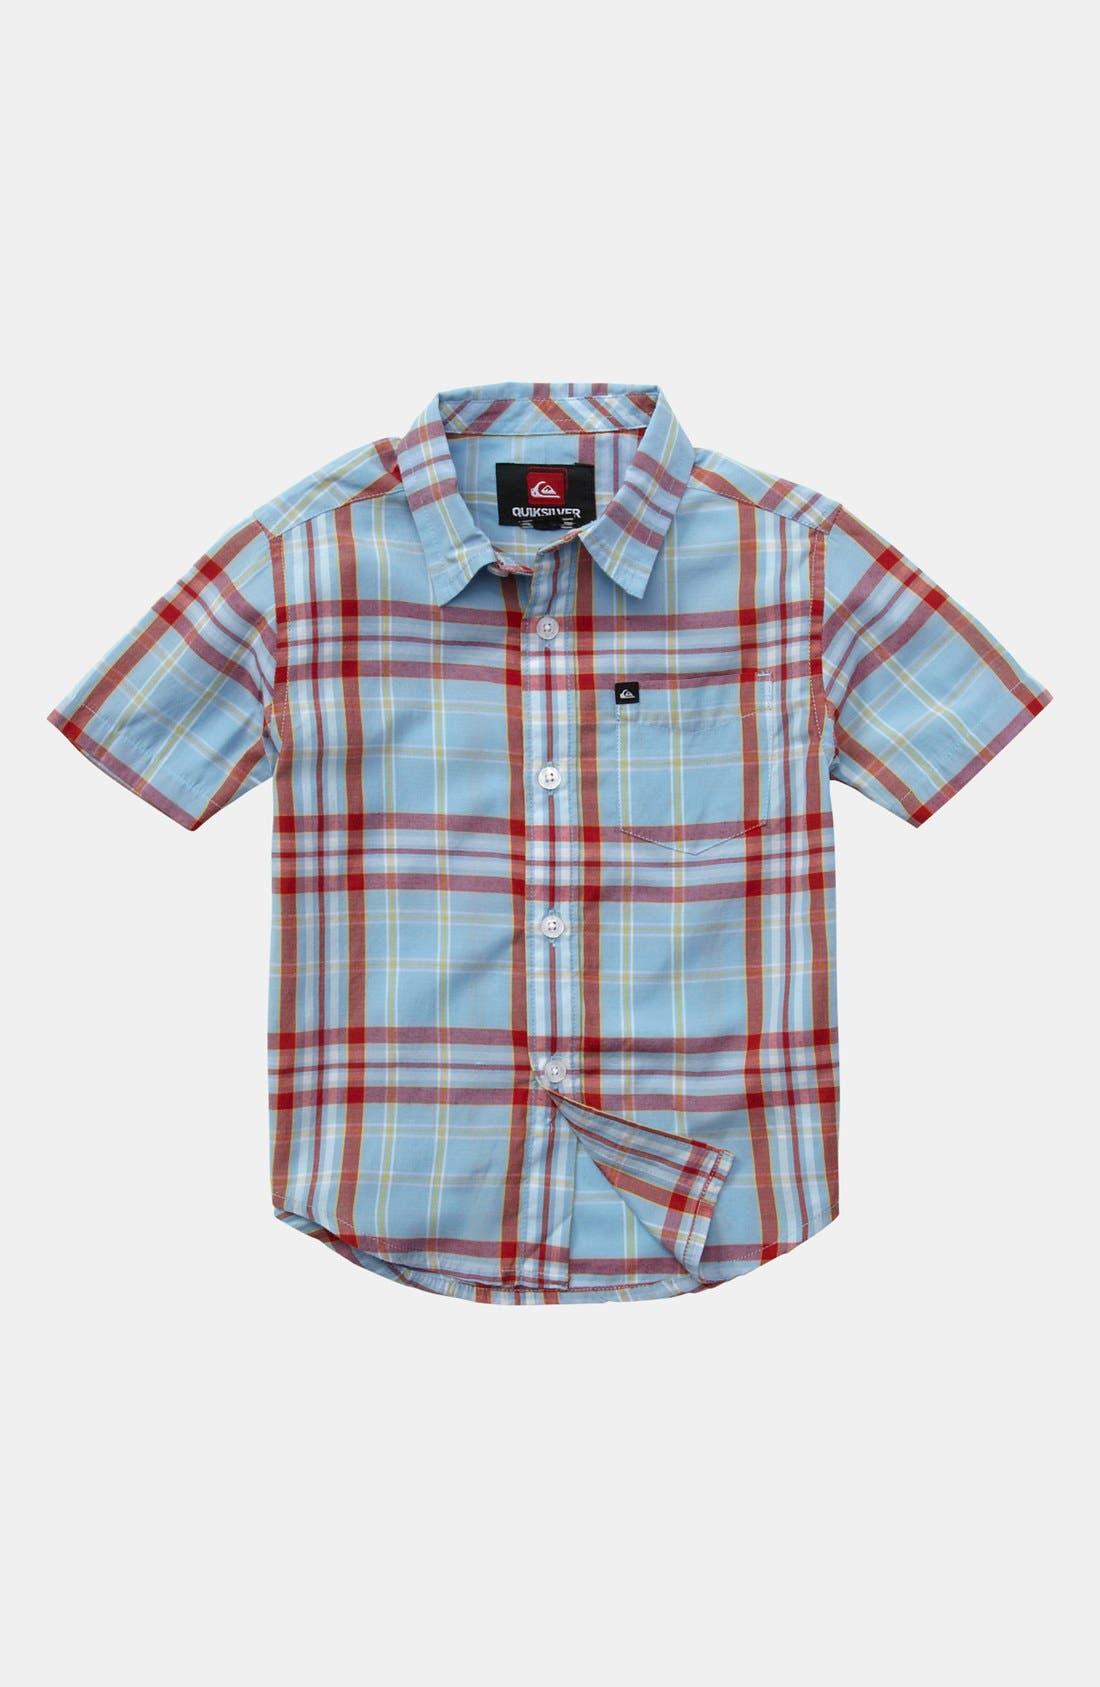 Alternate Image 1 Selected - Quiksilver 'Uncle Pat' Plaid Shirt (Baby Boys)